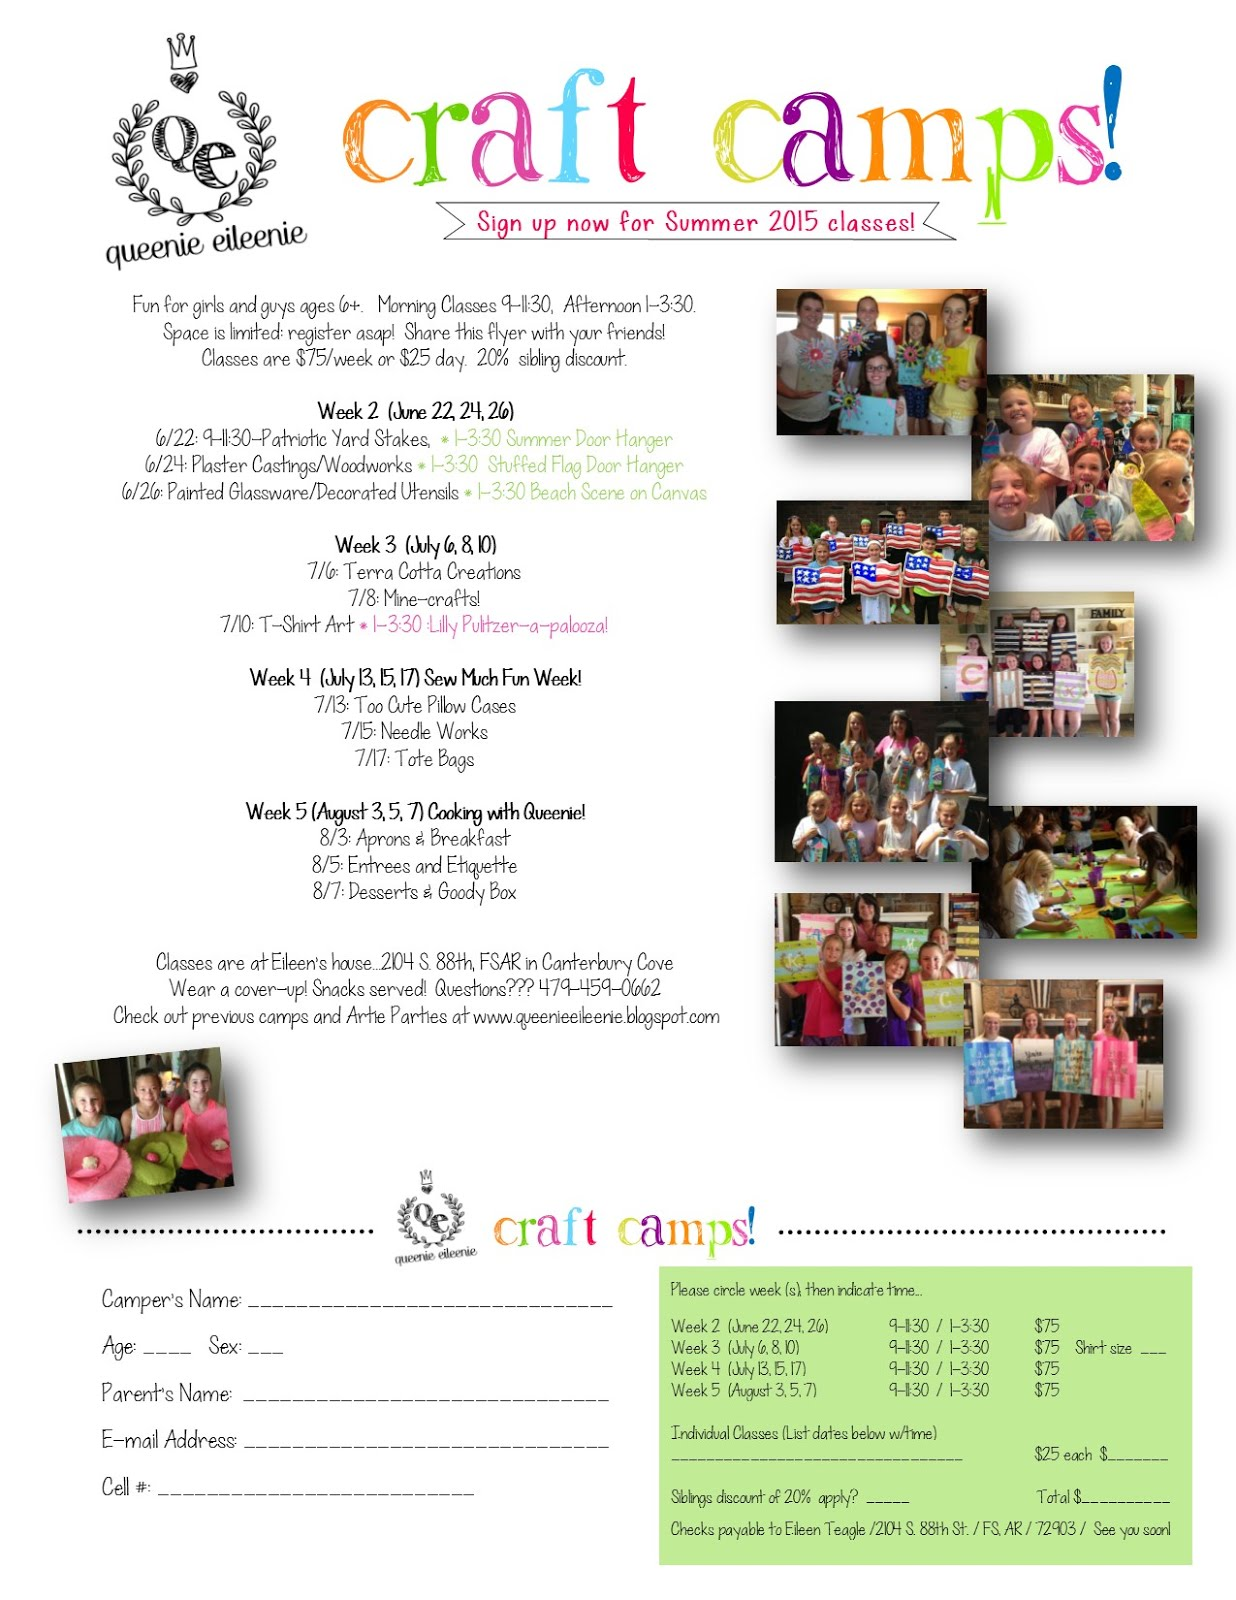 Sign Up for Summer 2015 Craft Camps!